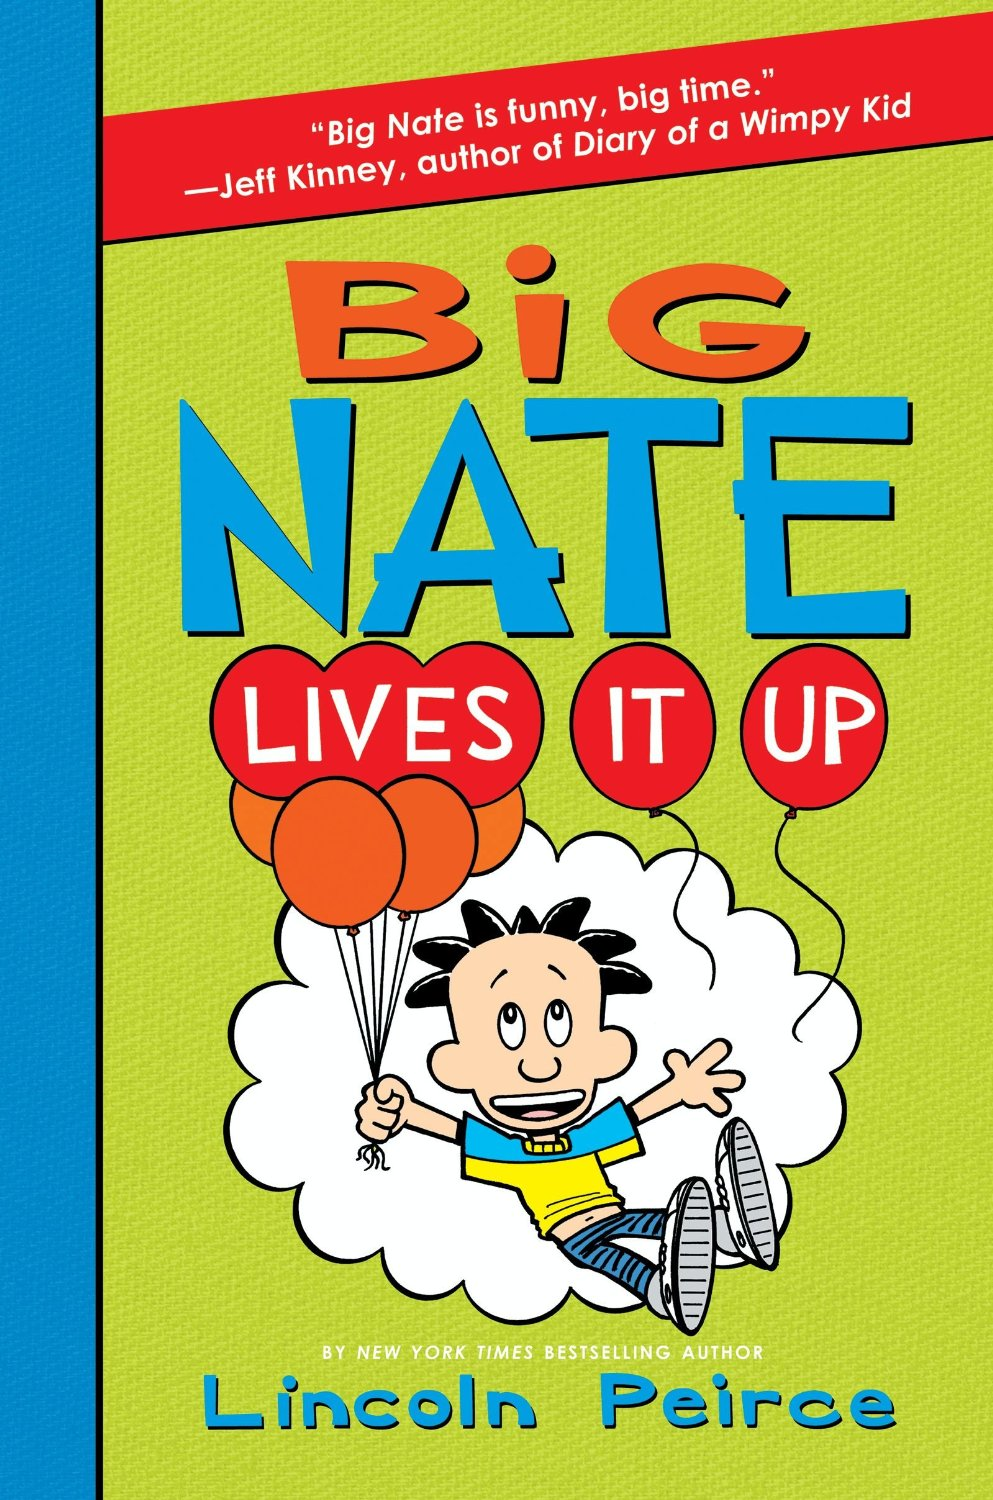 BIG NATE Lives it Up By Lincoln Peirce in OutlooK-12 Magazine